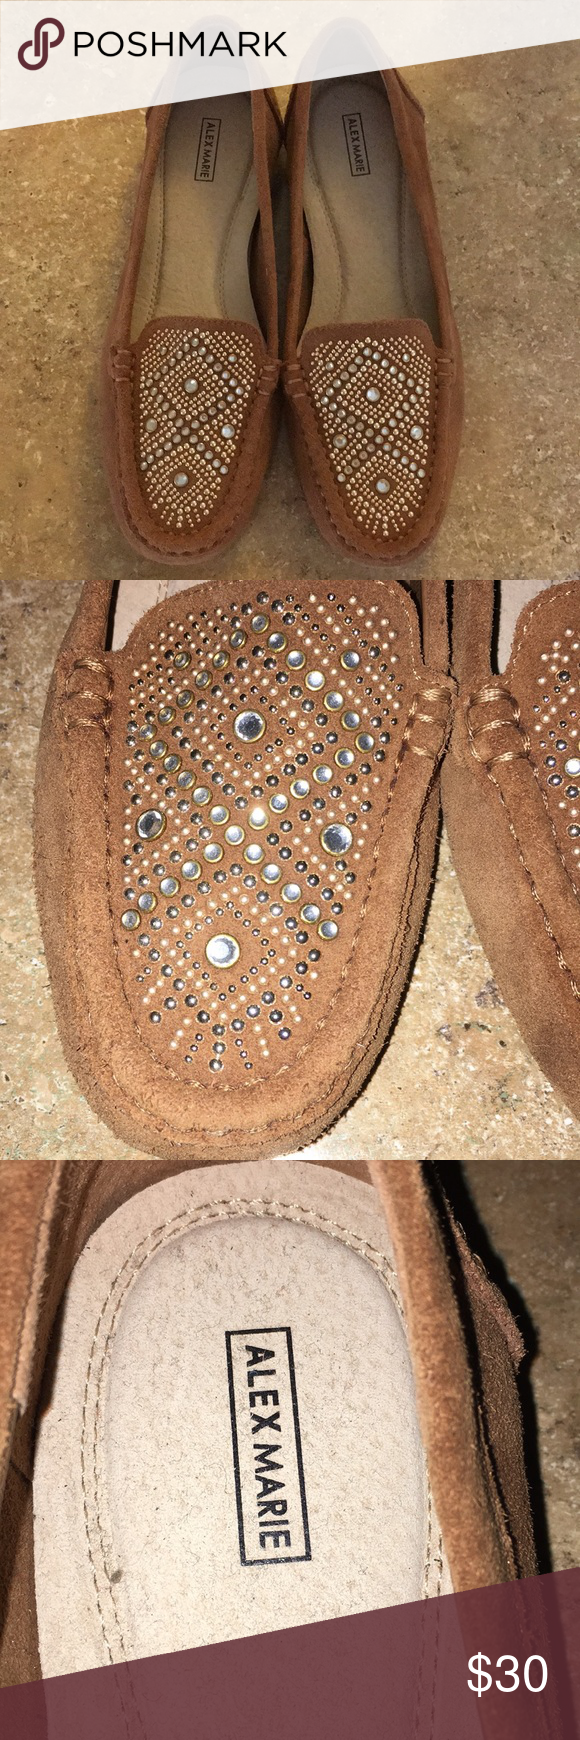 ad159253a30 NEW Alex Marie tan brown suede loafers 6.5M Bedazzled cute never worn  loafers in tan with silver and gold beading on suede. So cute and perfect  for Fall.